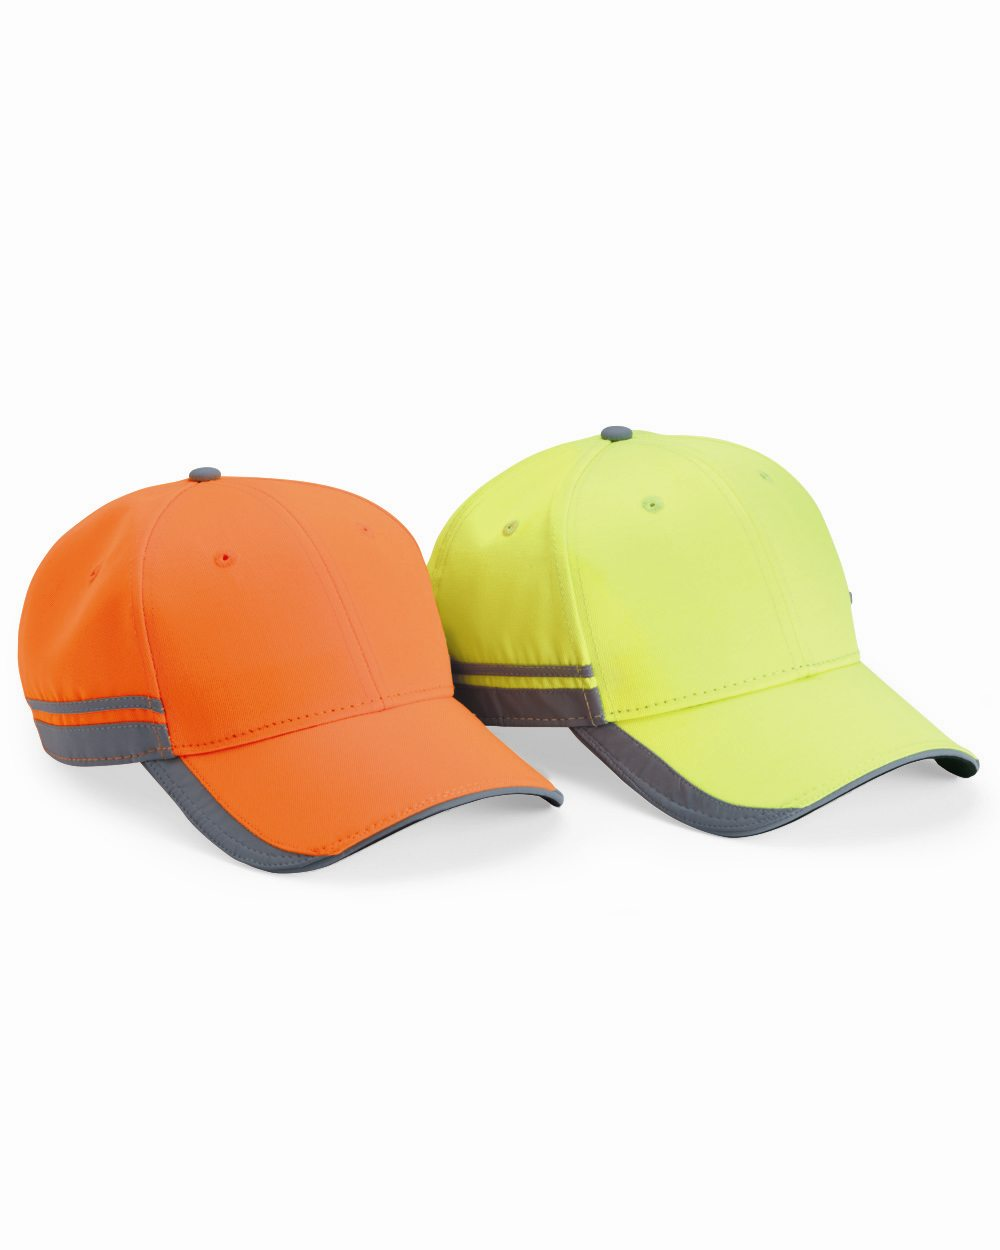 Outdoor Cap SAF201-Reflective Cap